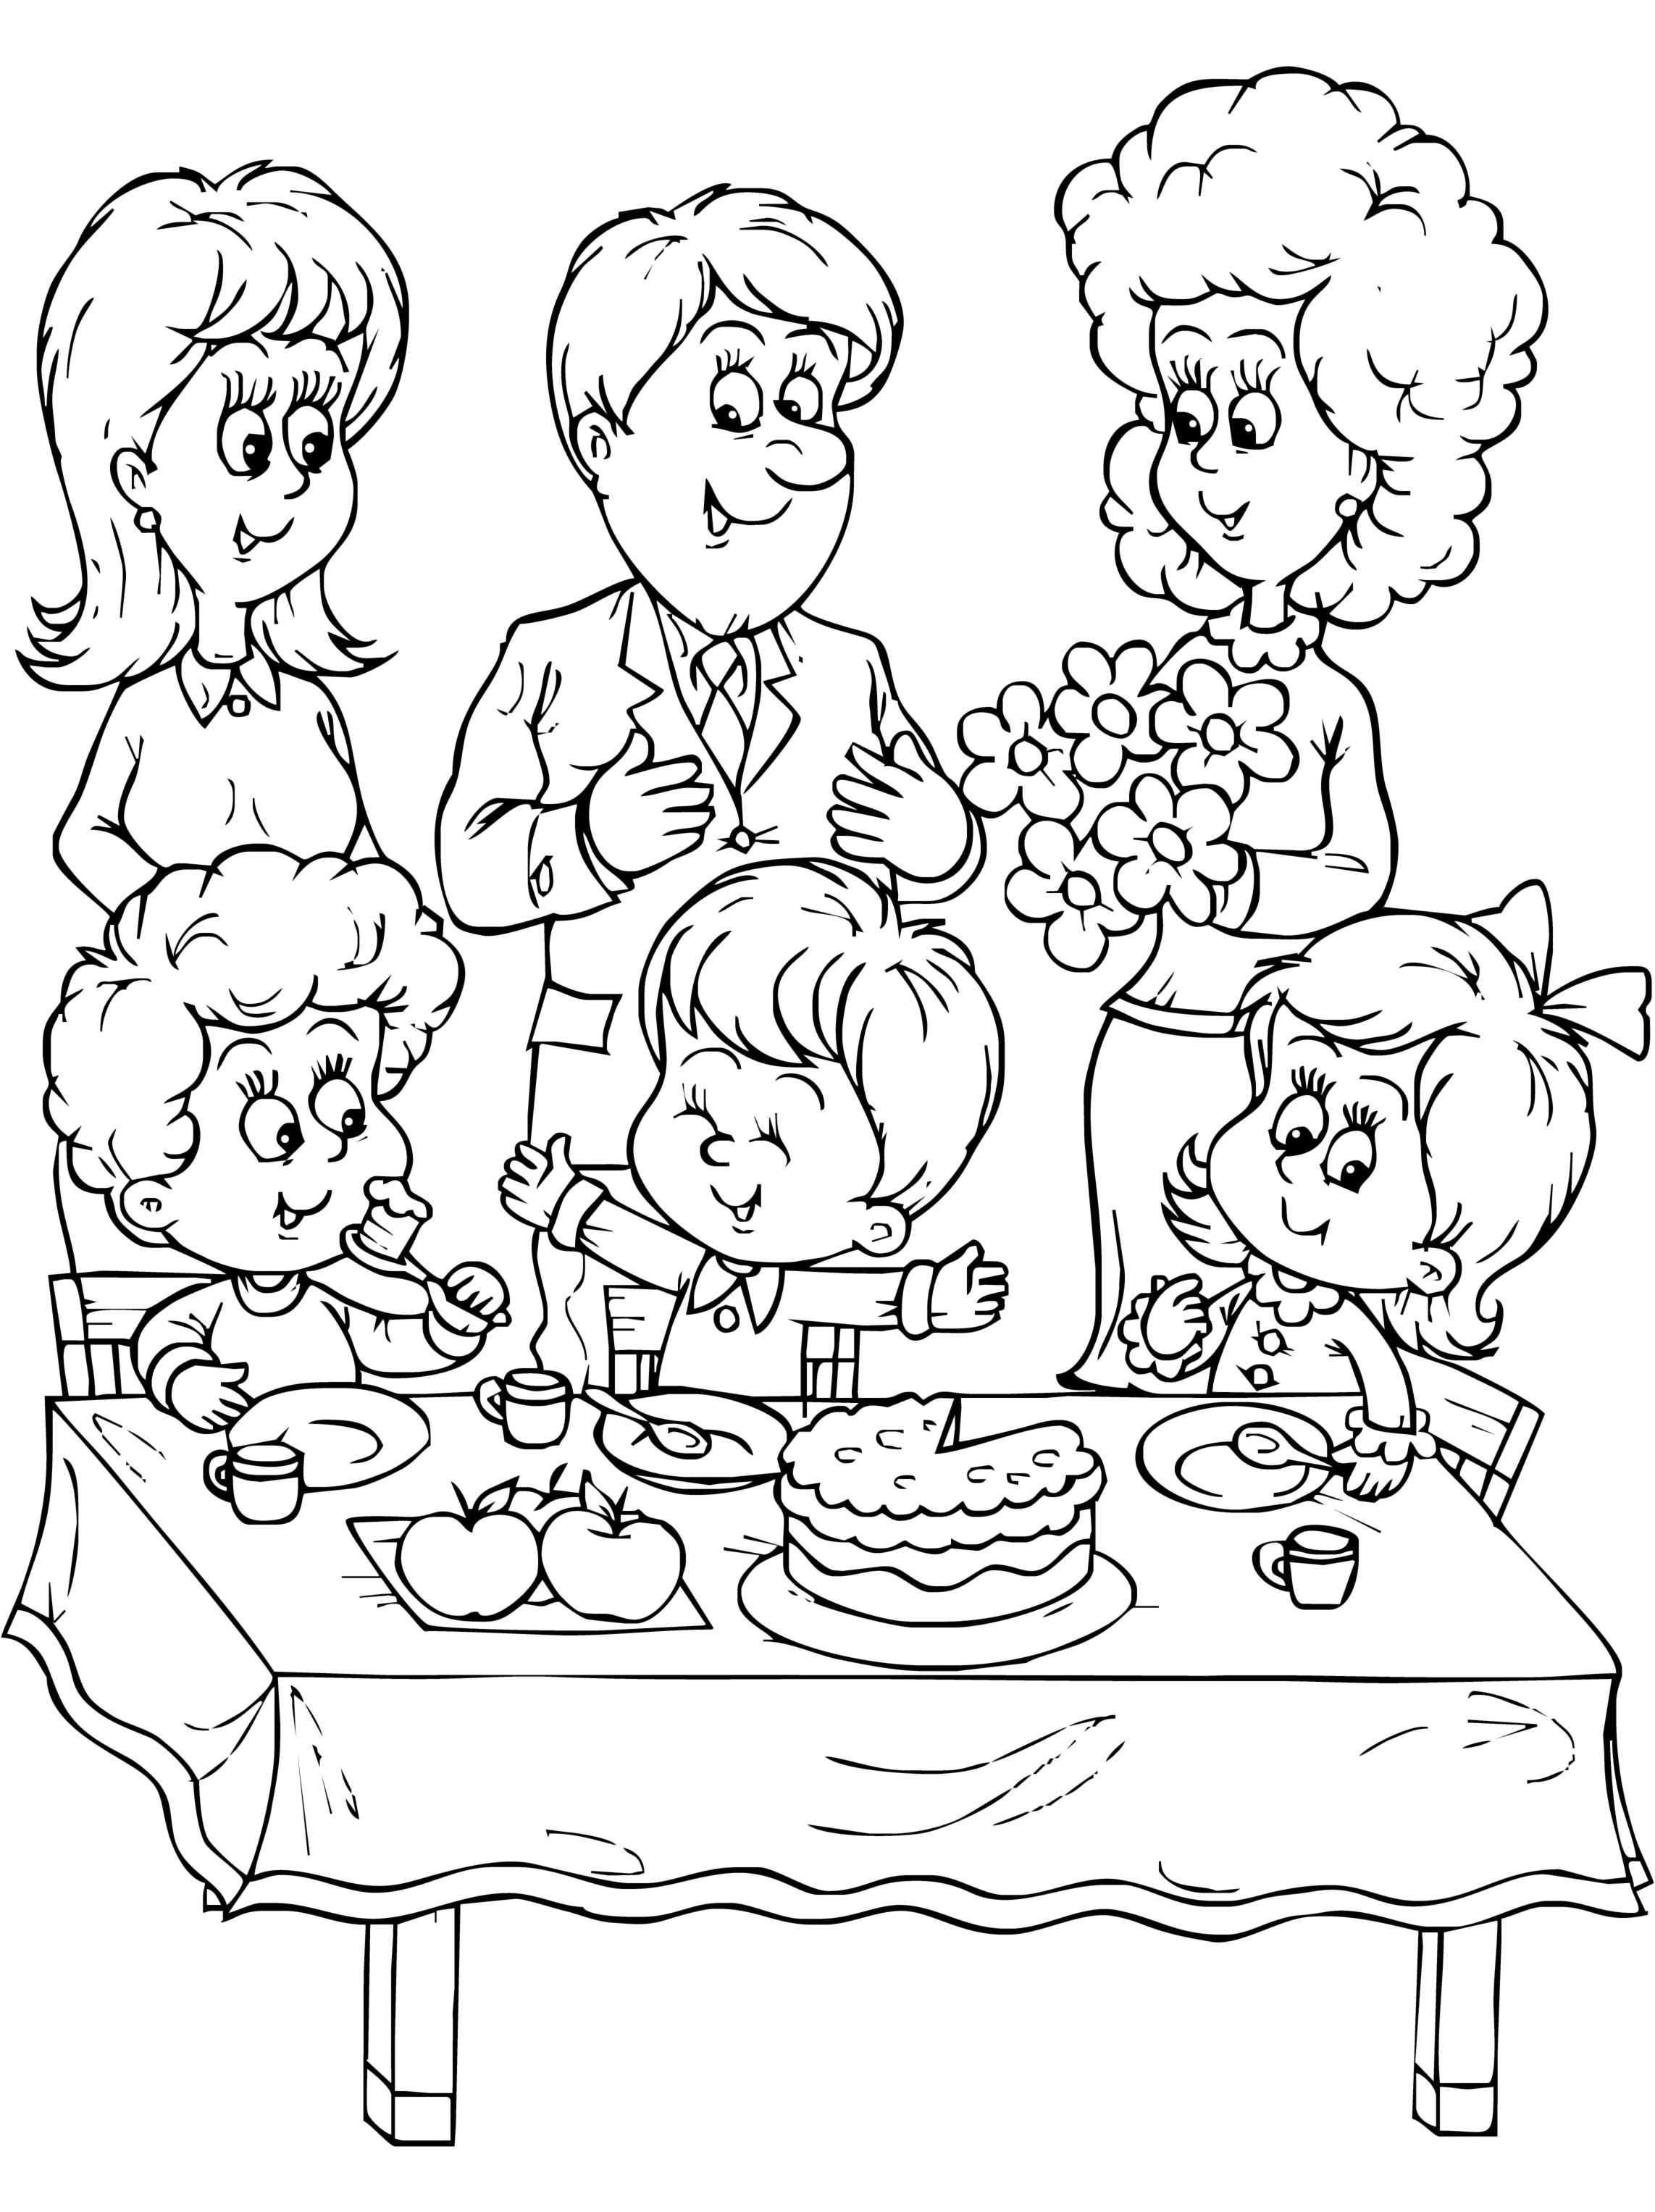 Free Family Picture Coloring Page Download Free Clip Art